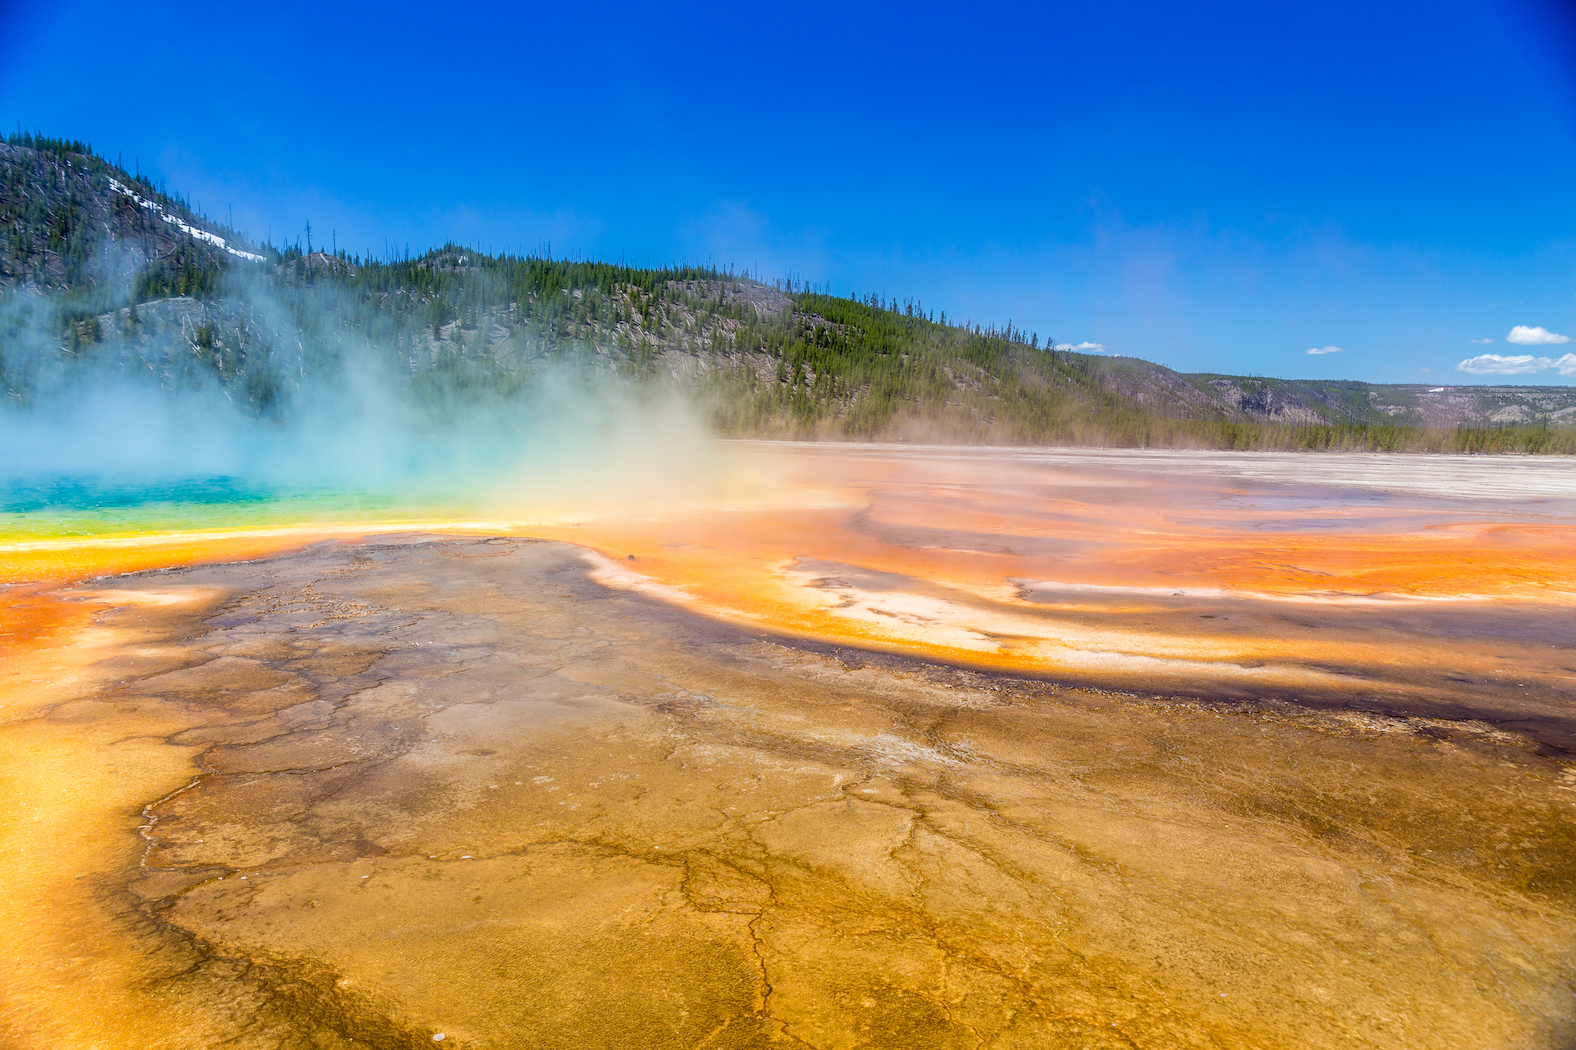 A geoscientist at Virginia Tech has found that the history of the Yellowstone supervolcano is much different than what has been assumed.